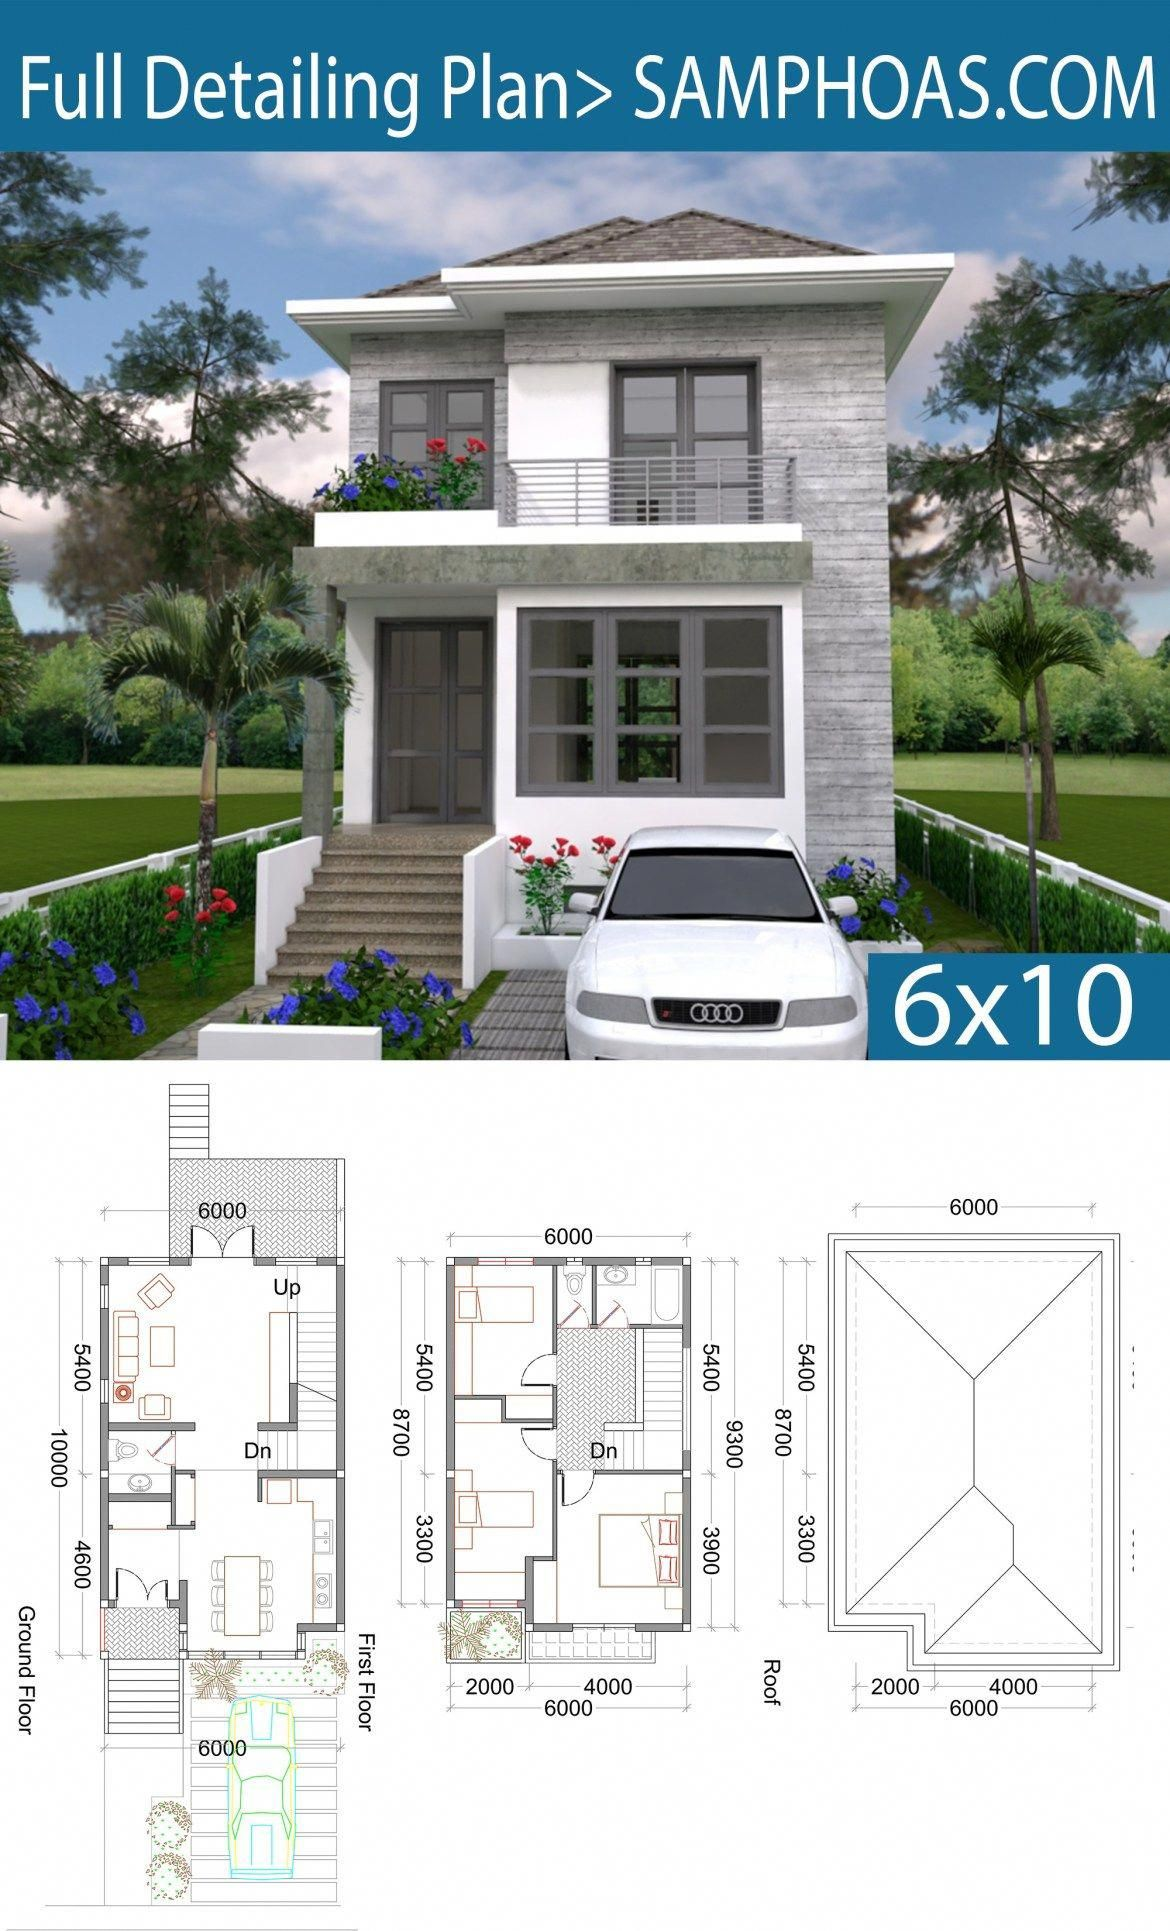 Modern Home Design And House Construction 20 50 Modernhomedesign Small House Design Plans Modern House Plans Sims House Plans